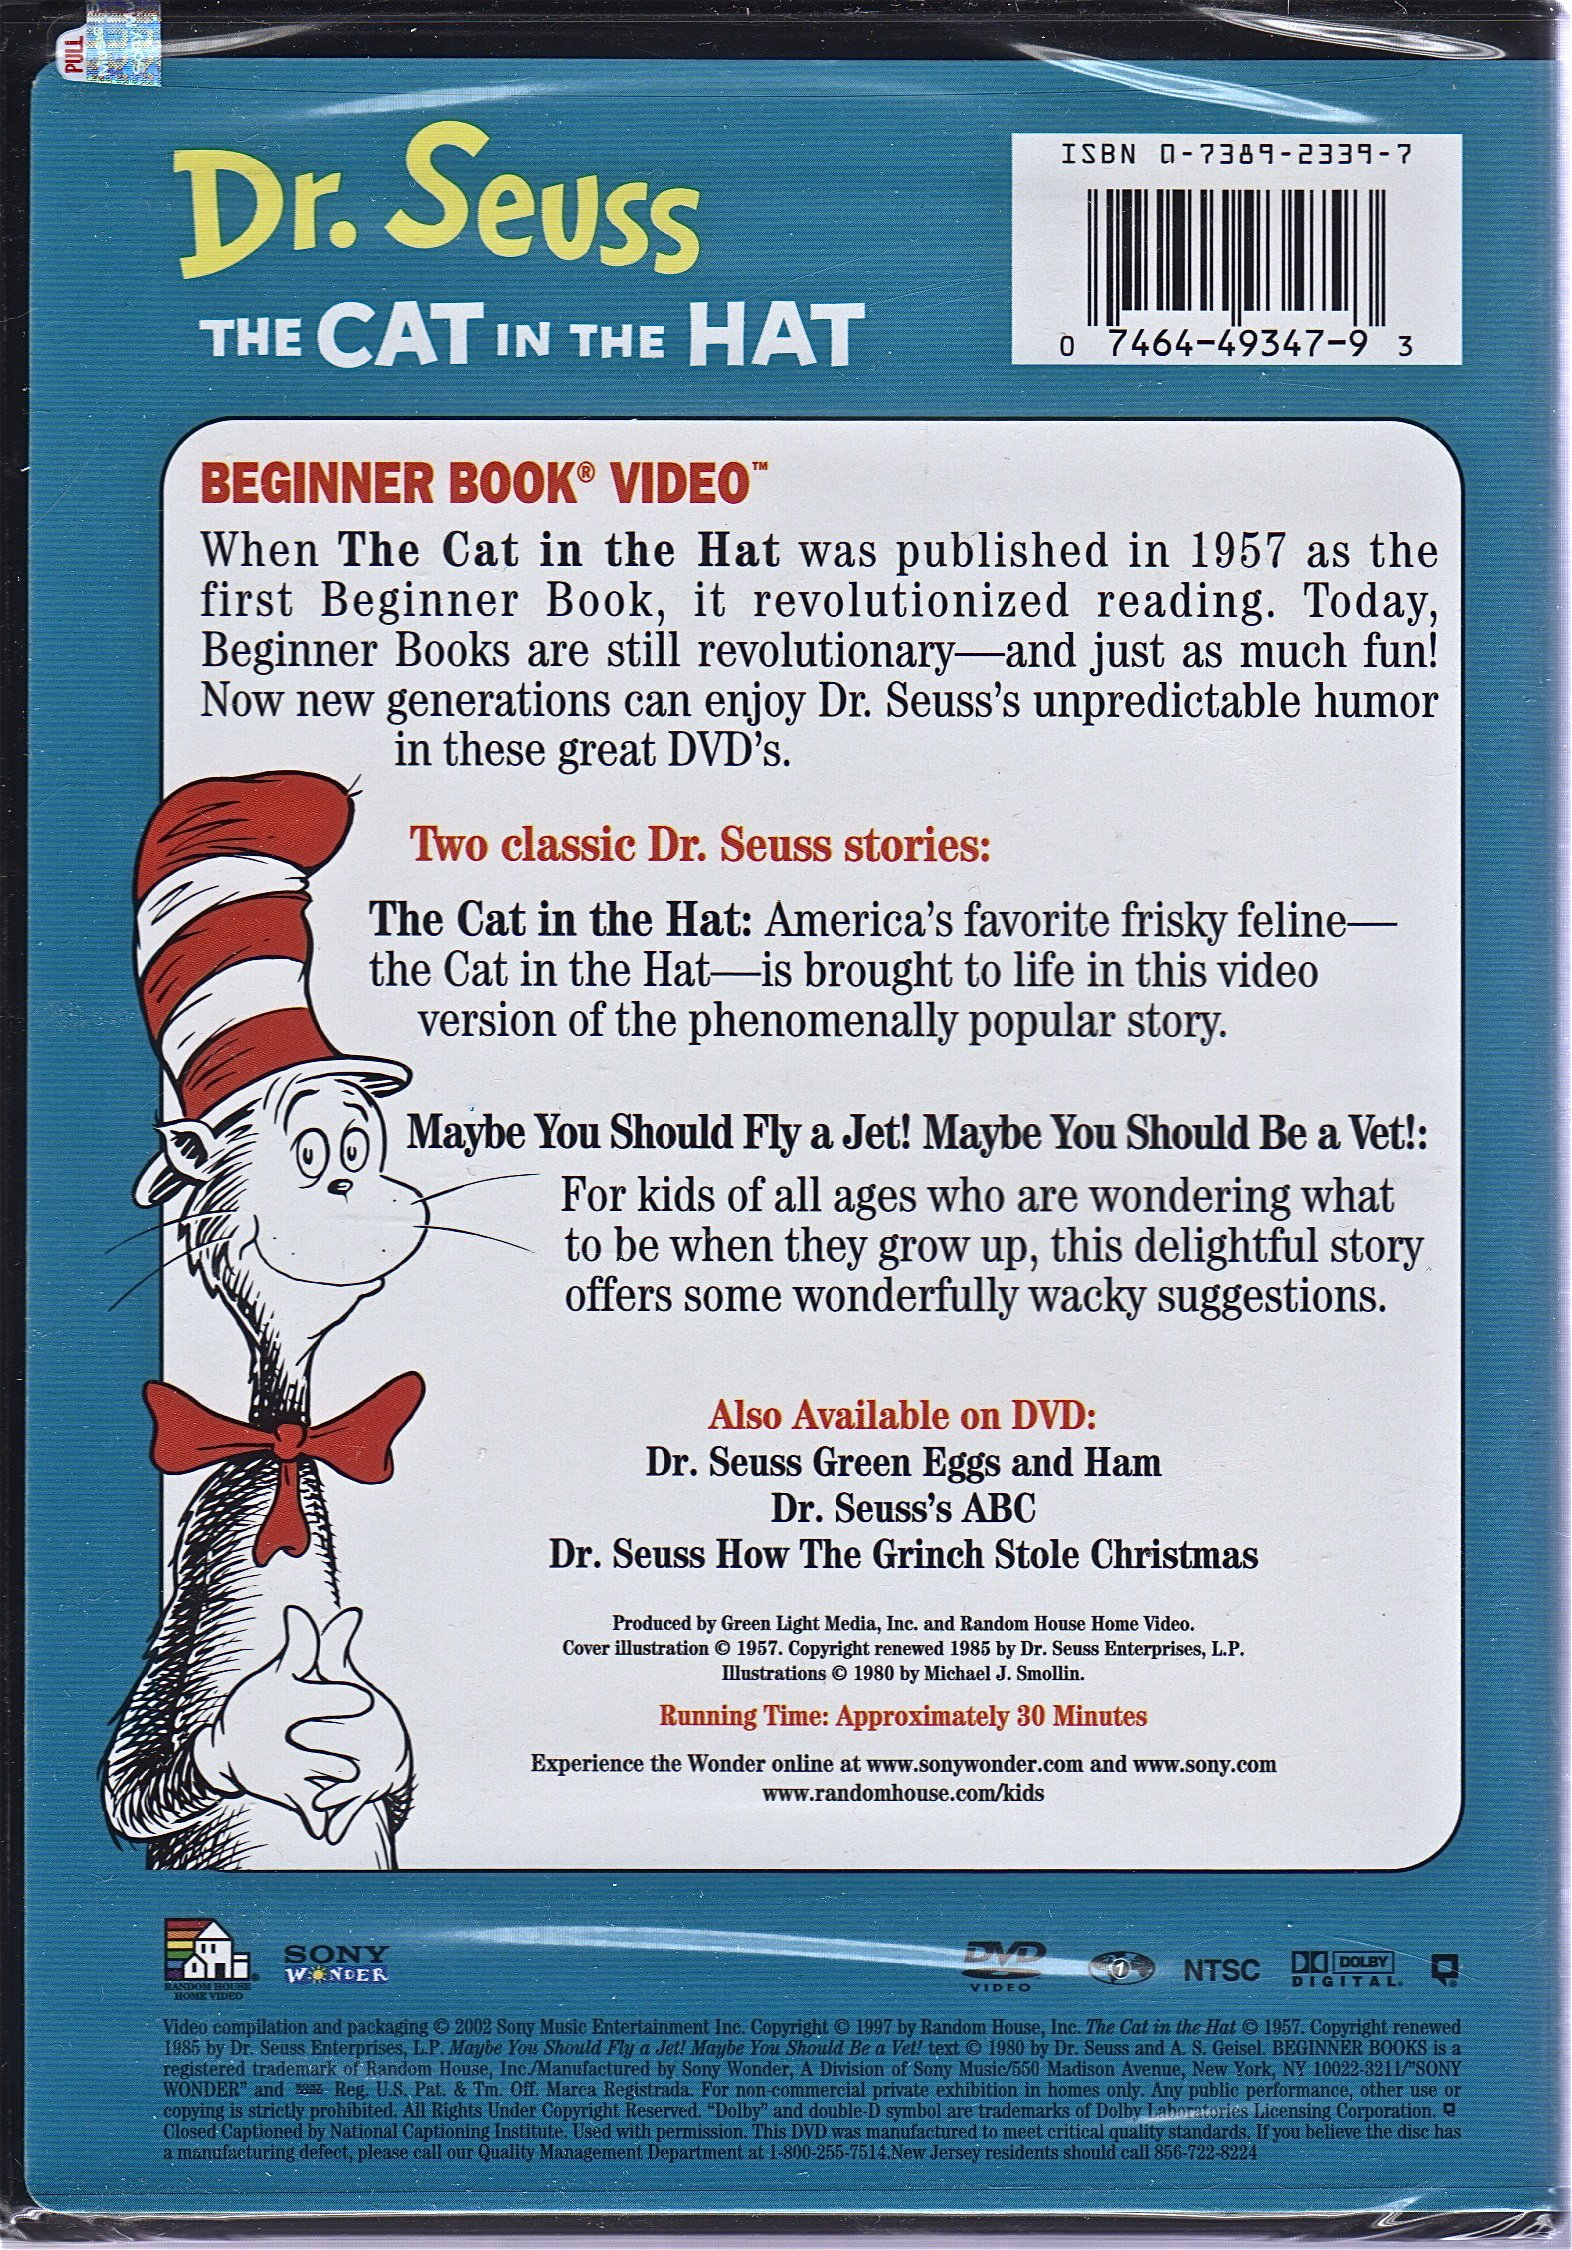 The Cat In The Hat Dr Seuss 9780738923390 Books Amazon Ca